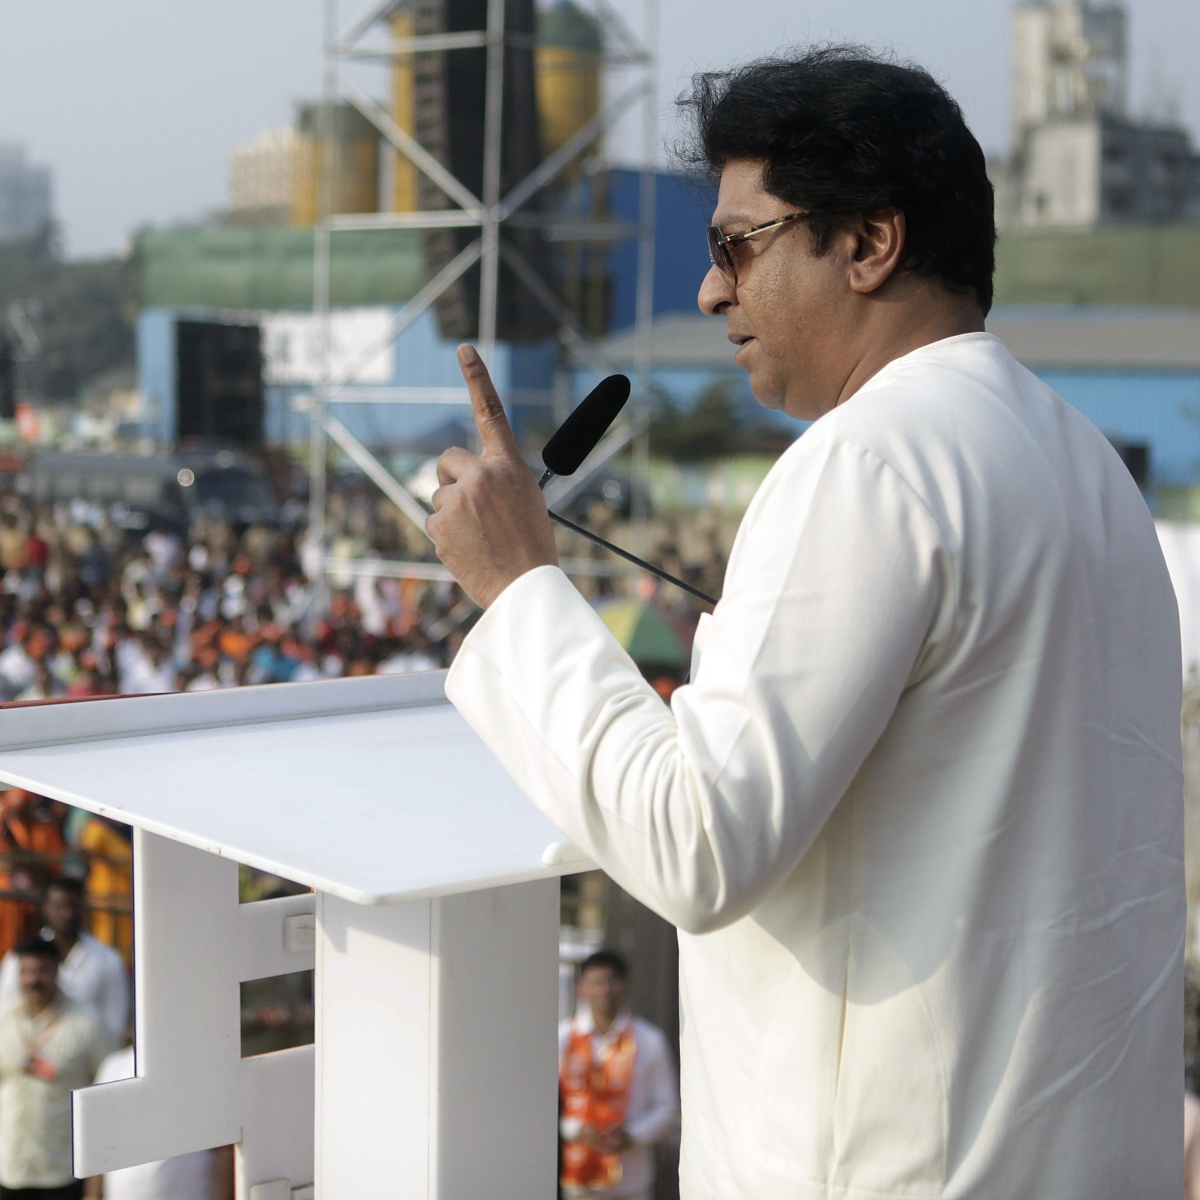 'Stones will be answered with stones, swords with swords': Raj Thackeray warns of 'befitting reply' to rallies against CAA, NRC